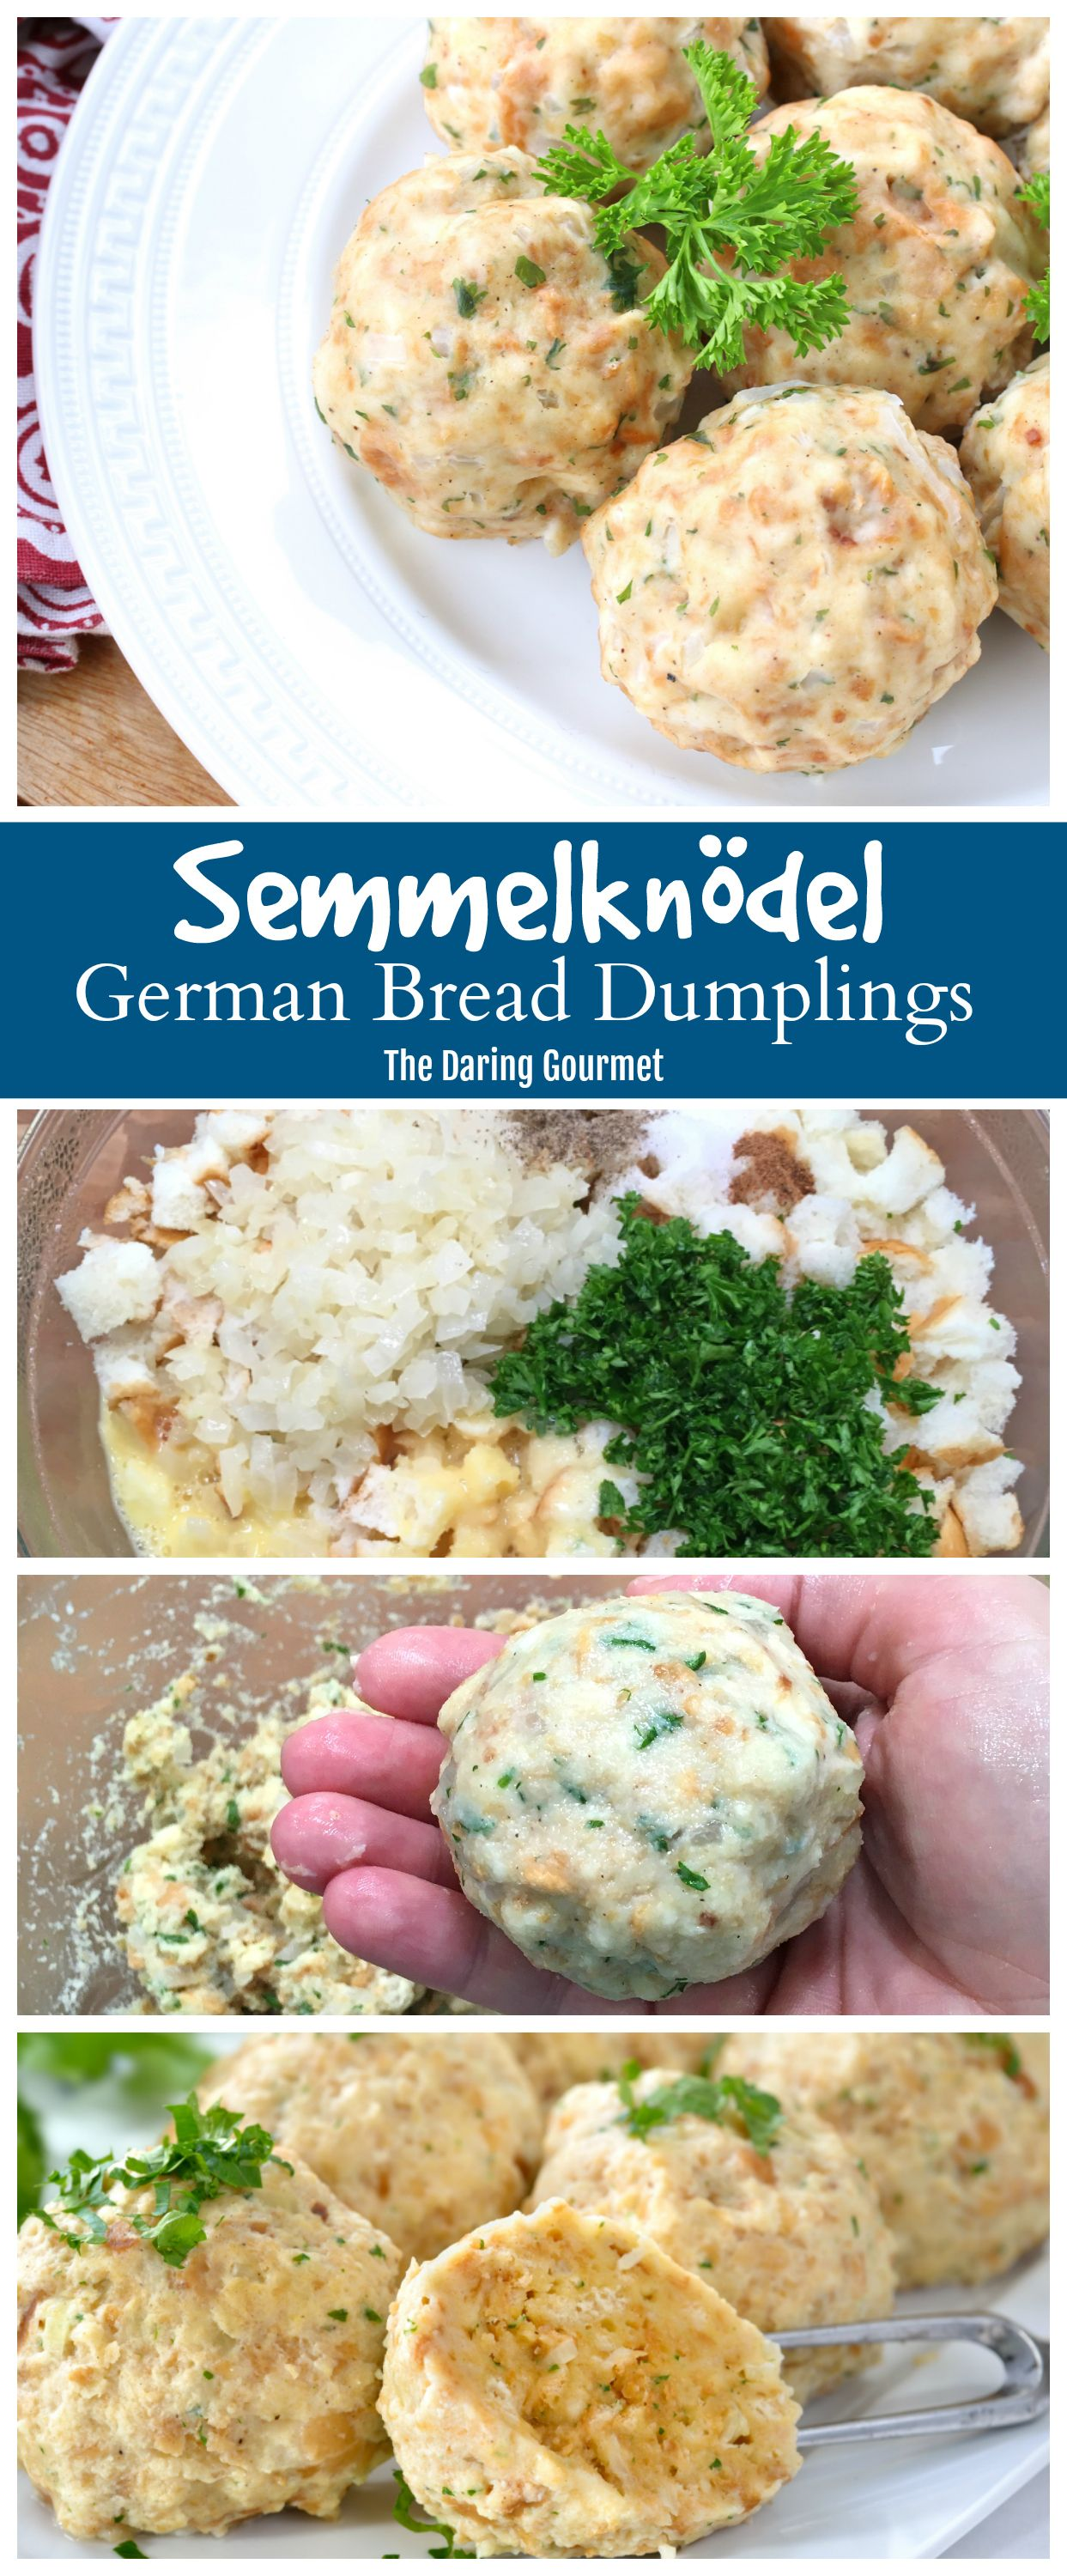 Deutsche Kuche Bread Semmelknödel German Bread Dumplings